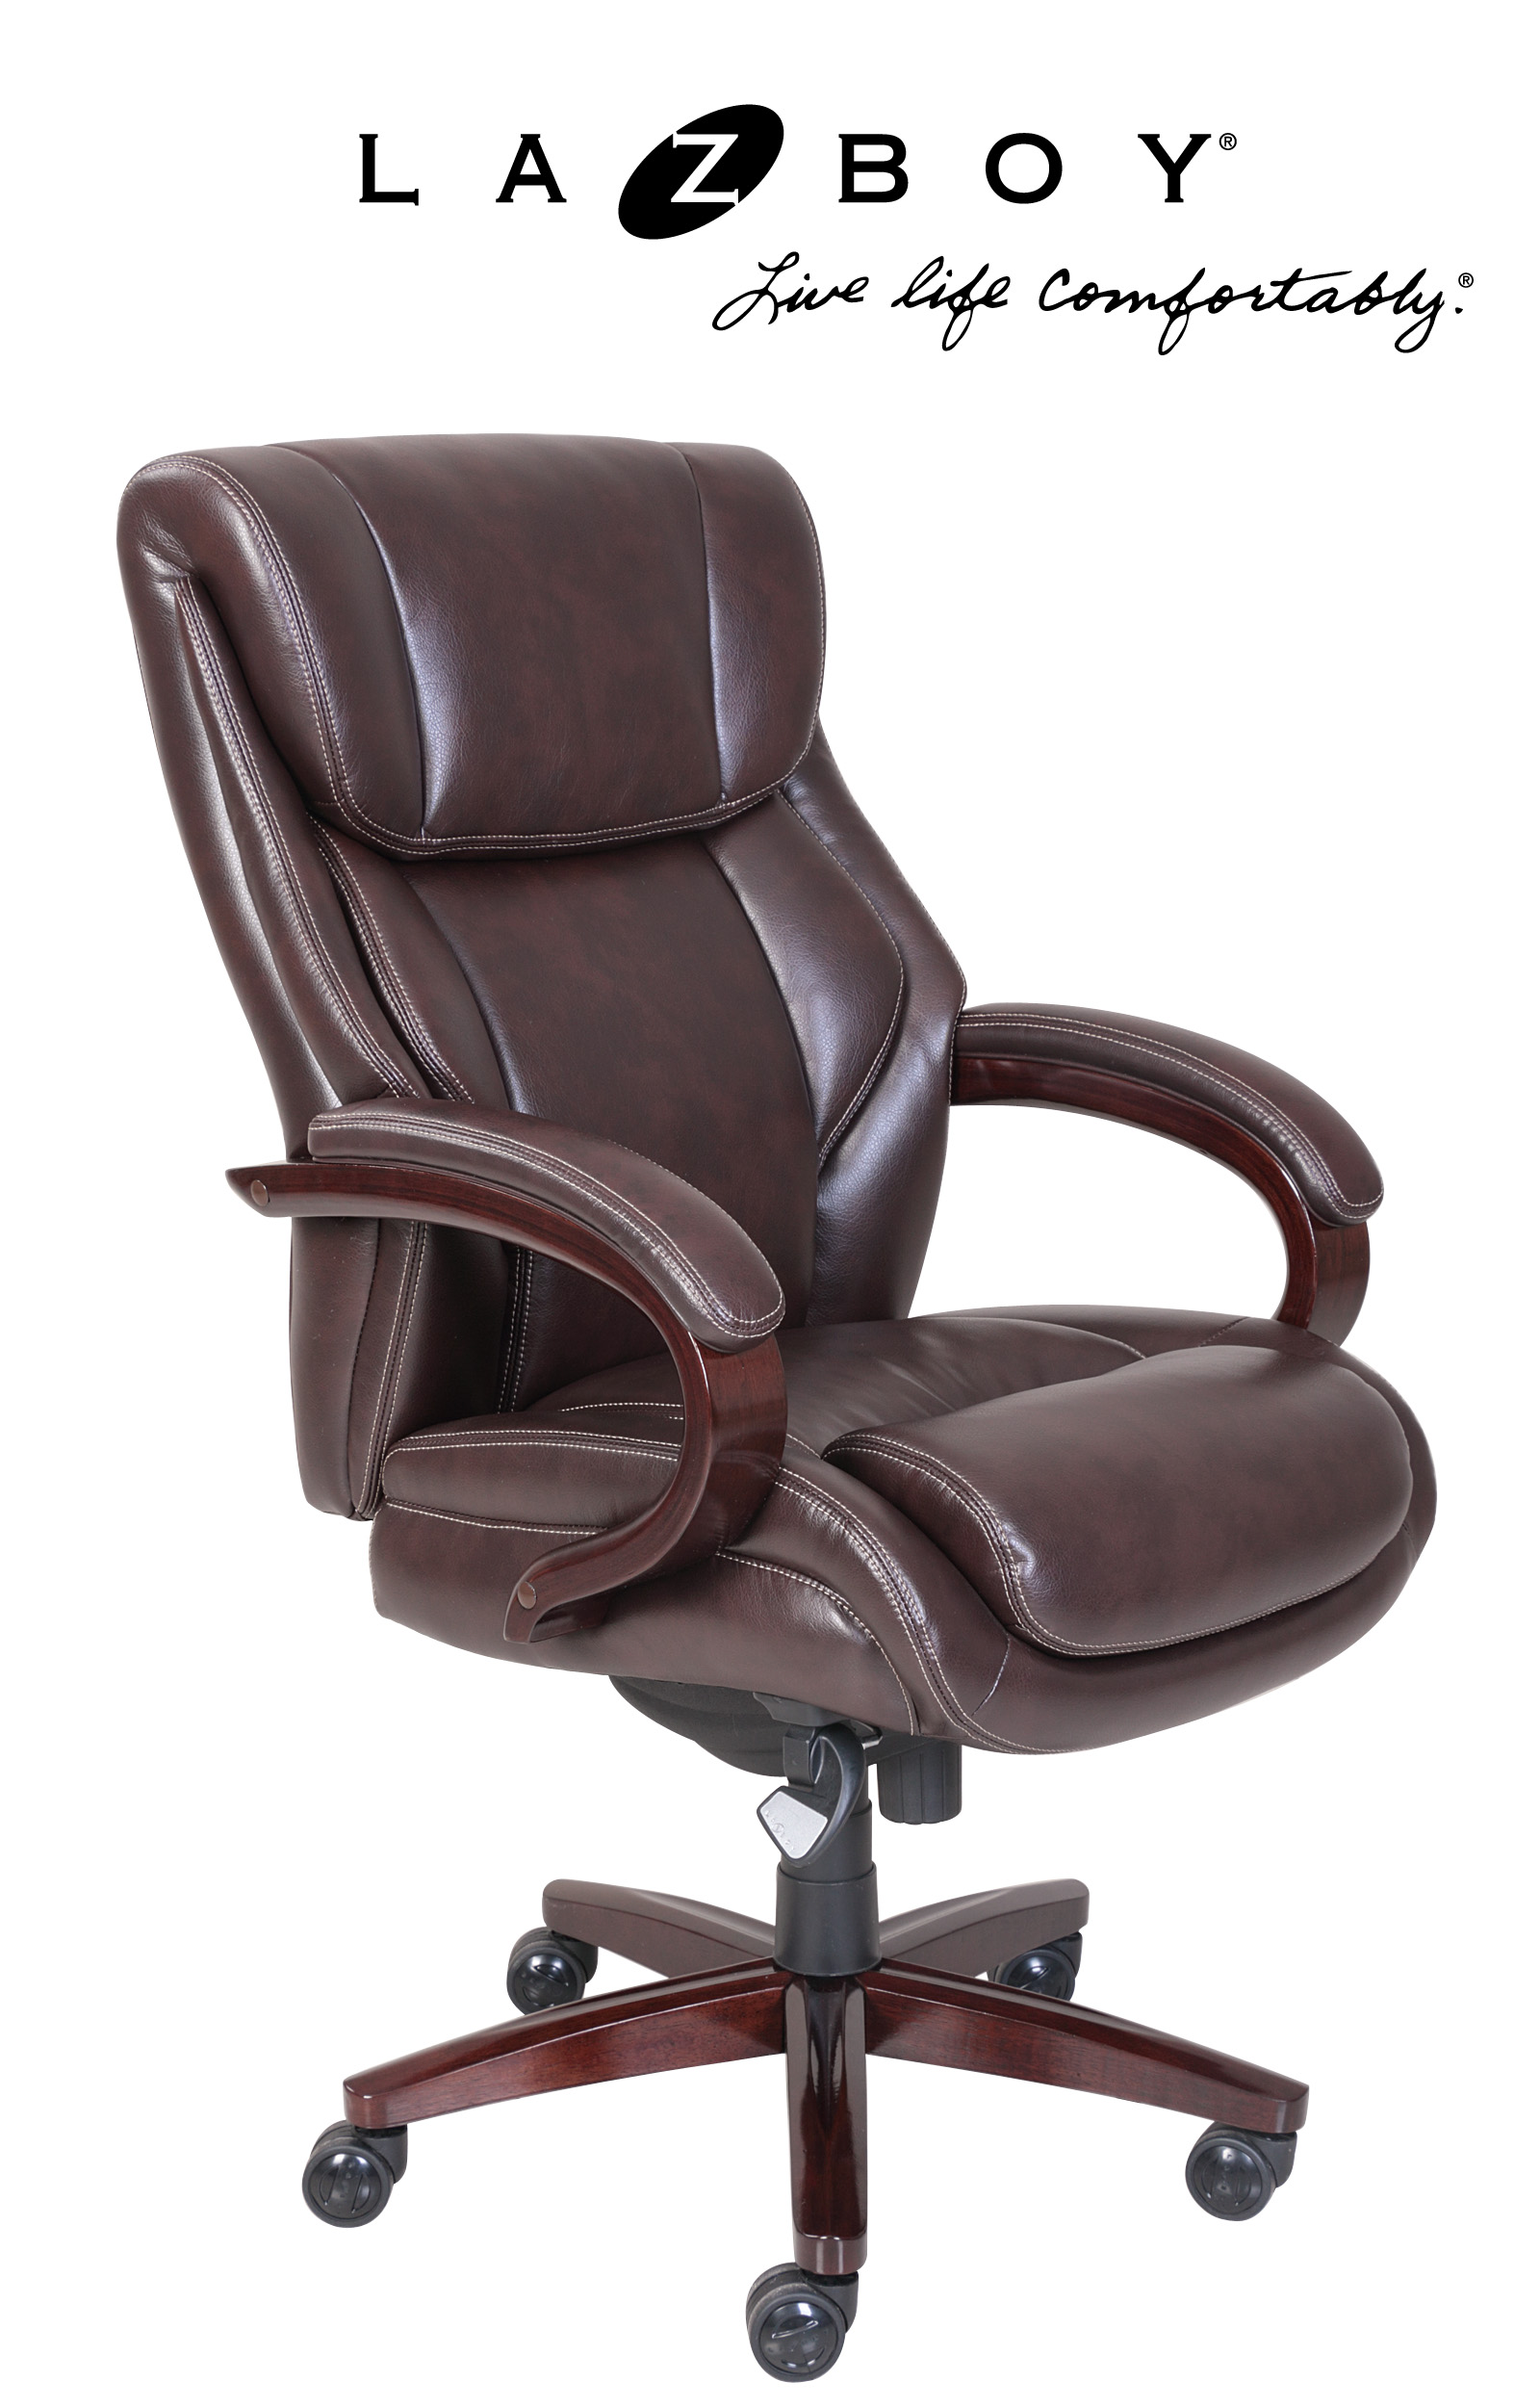 La Z Boy Office Chairs La Z Boy Bellamy Comfort Core Traditions Executive Office